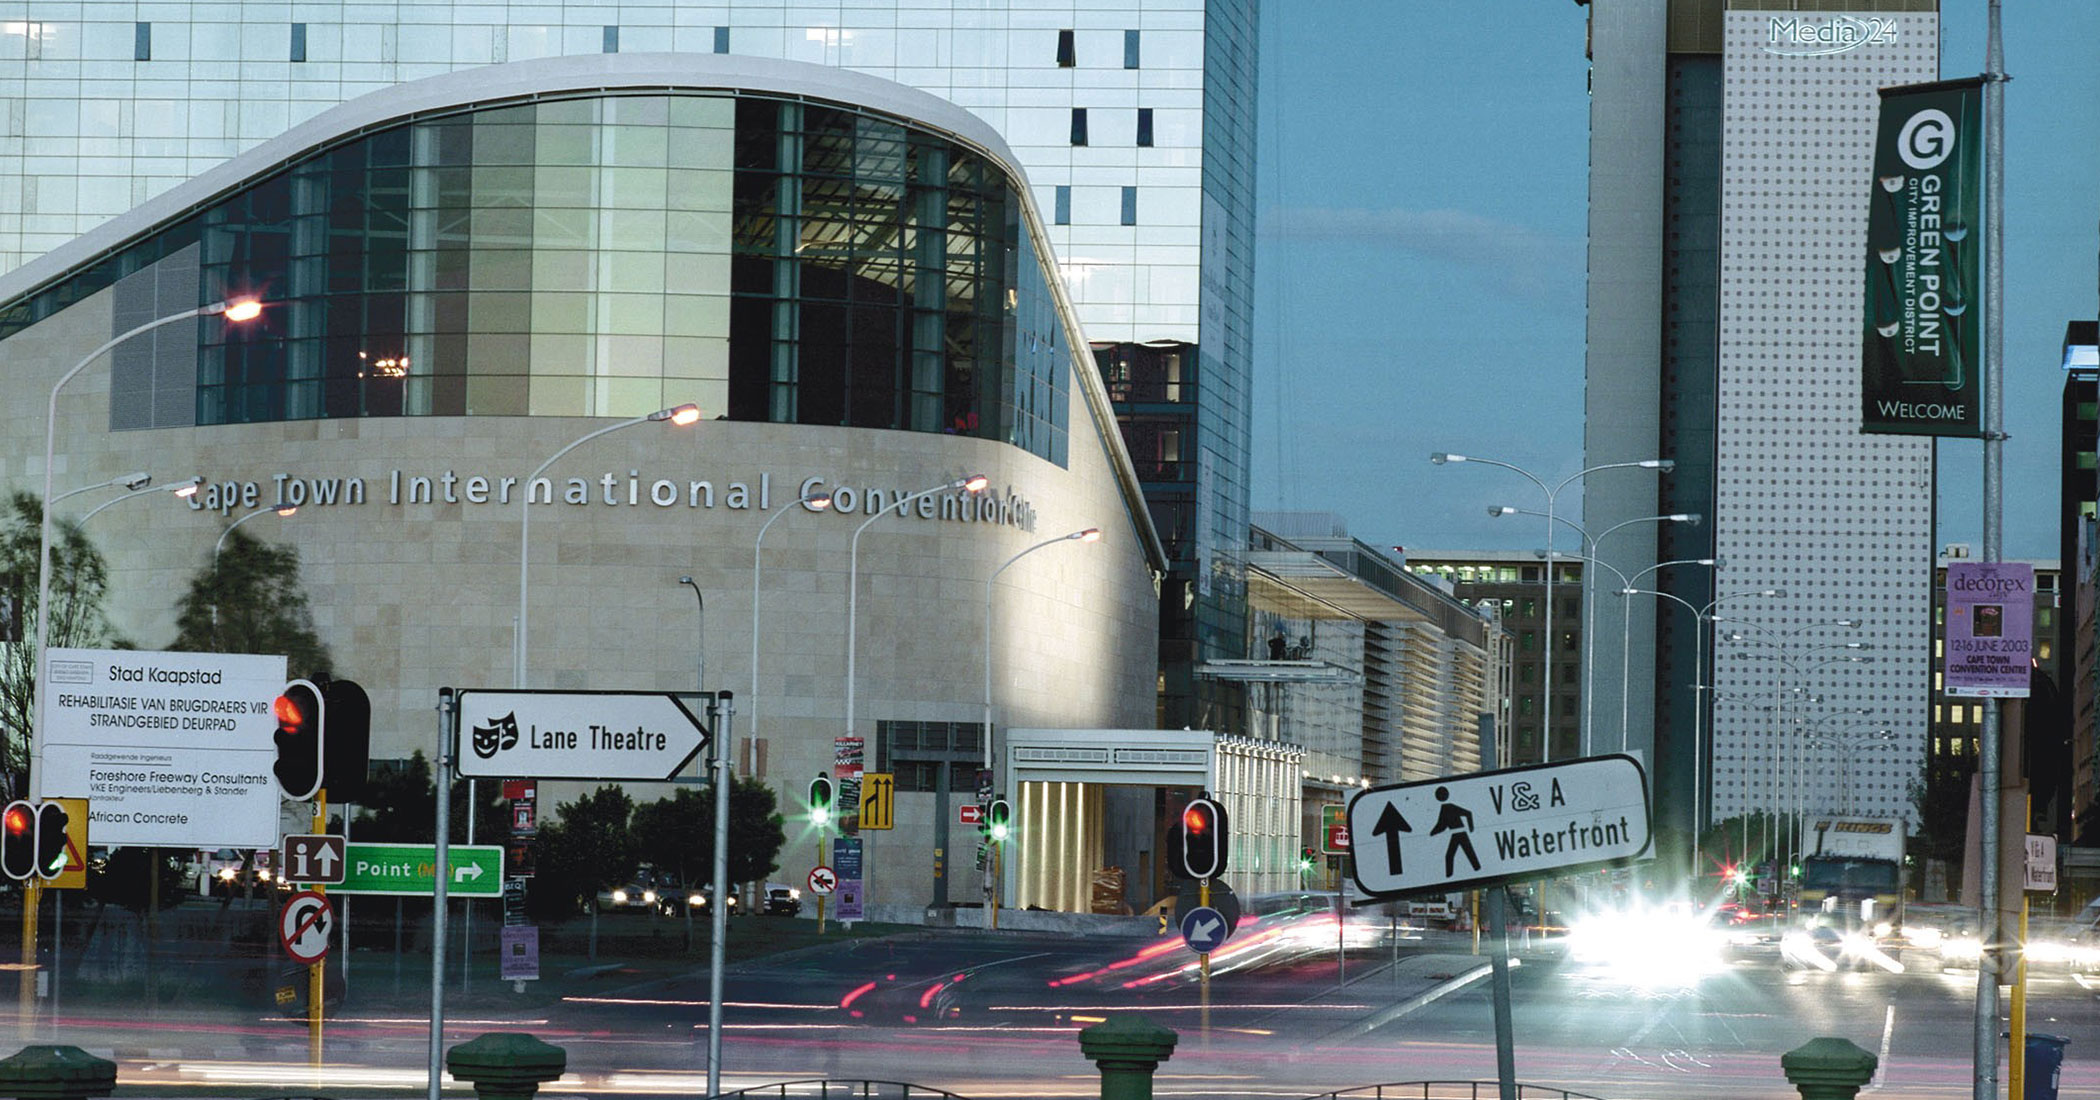 Cape-Town-International-Convention-Centre-WorldNTraveland